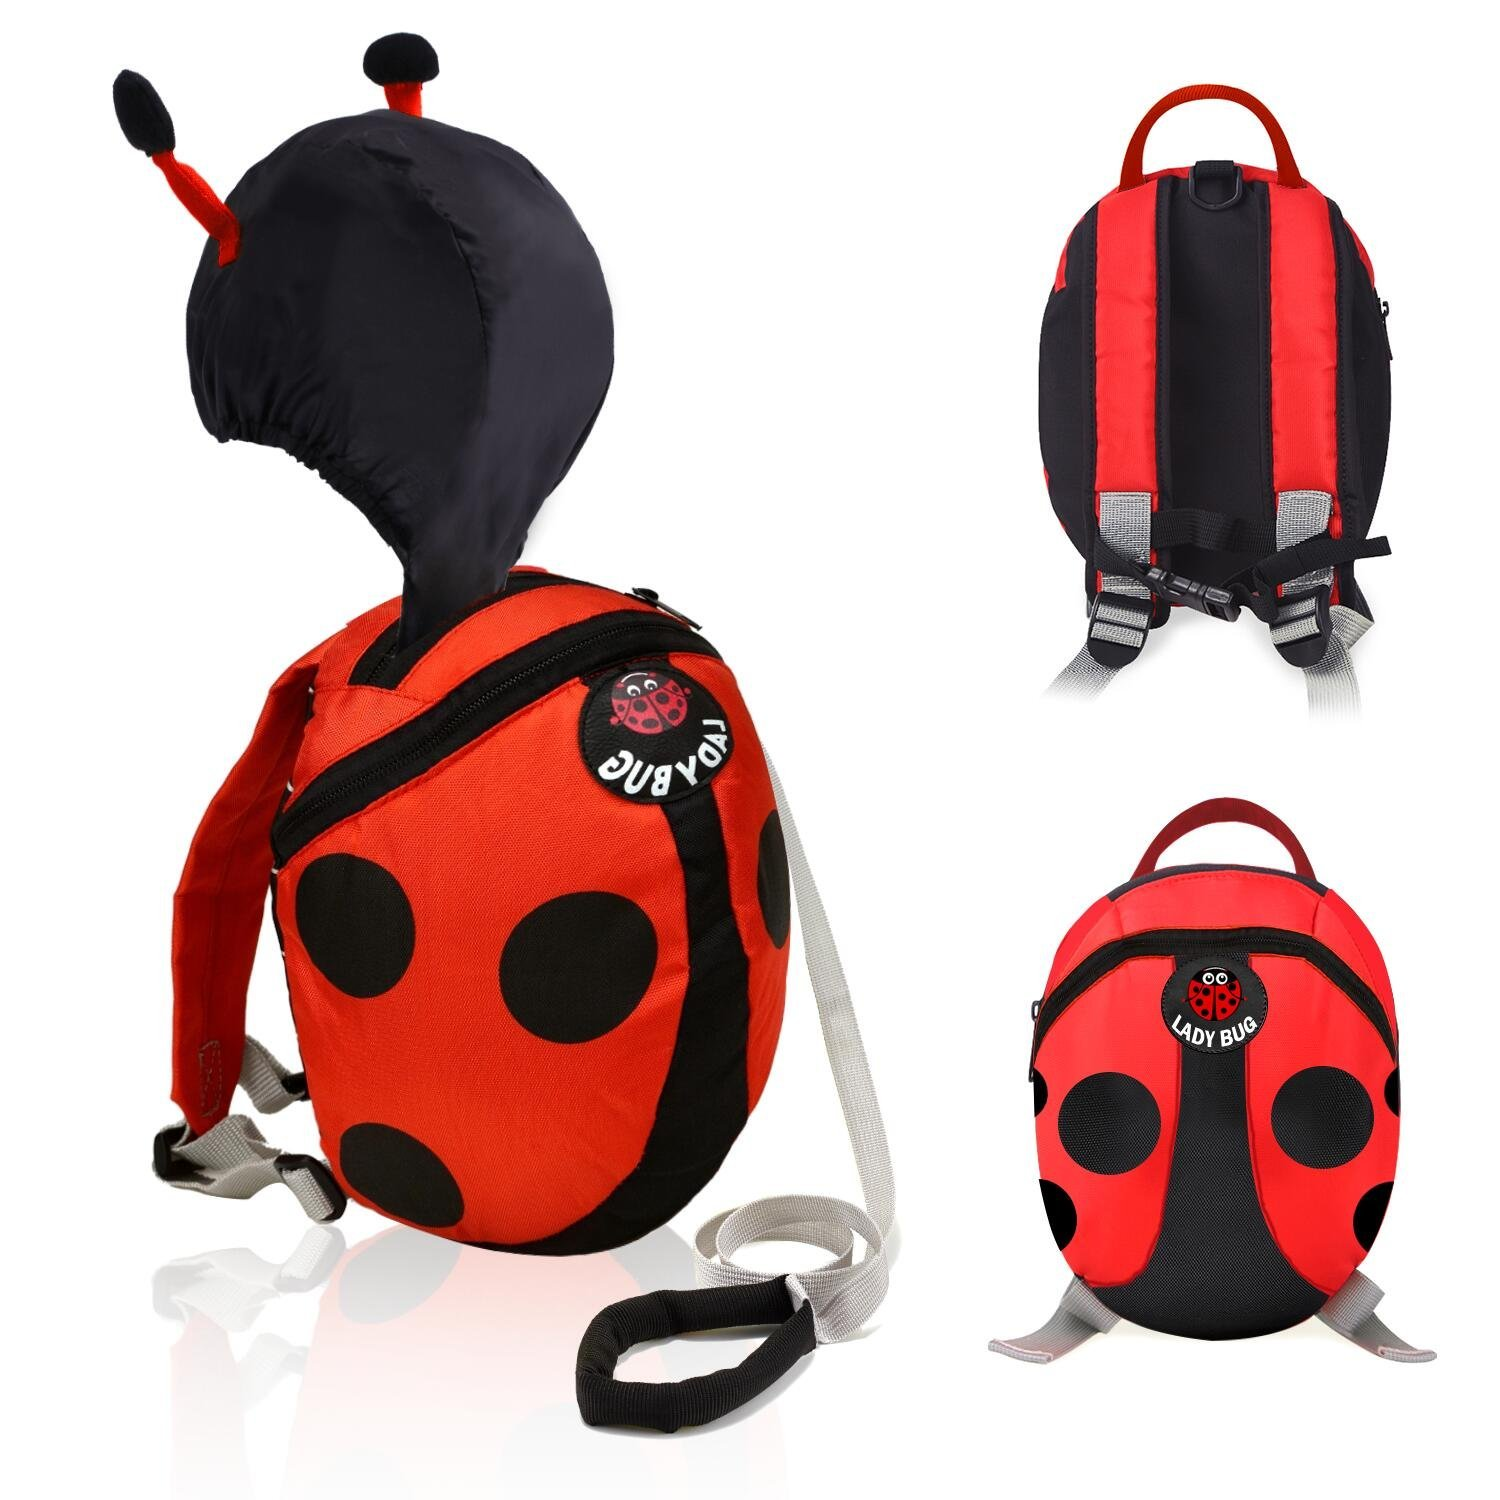 4852e3070d4 Cheap Toddler Harness Leash, find Toddler Harness Leash deals on ...